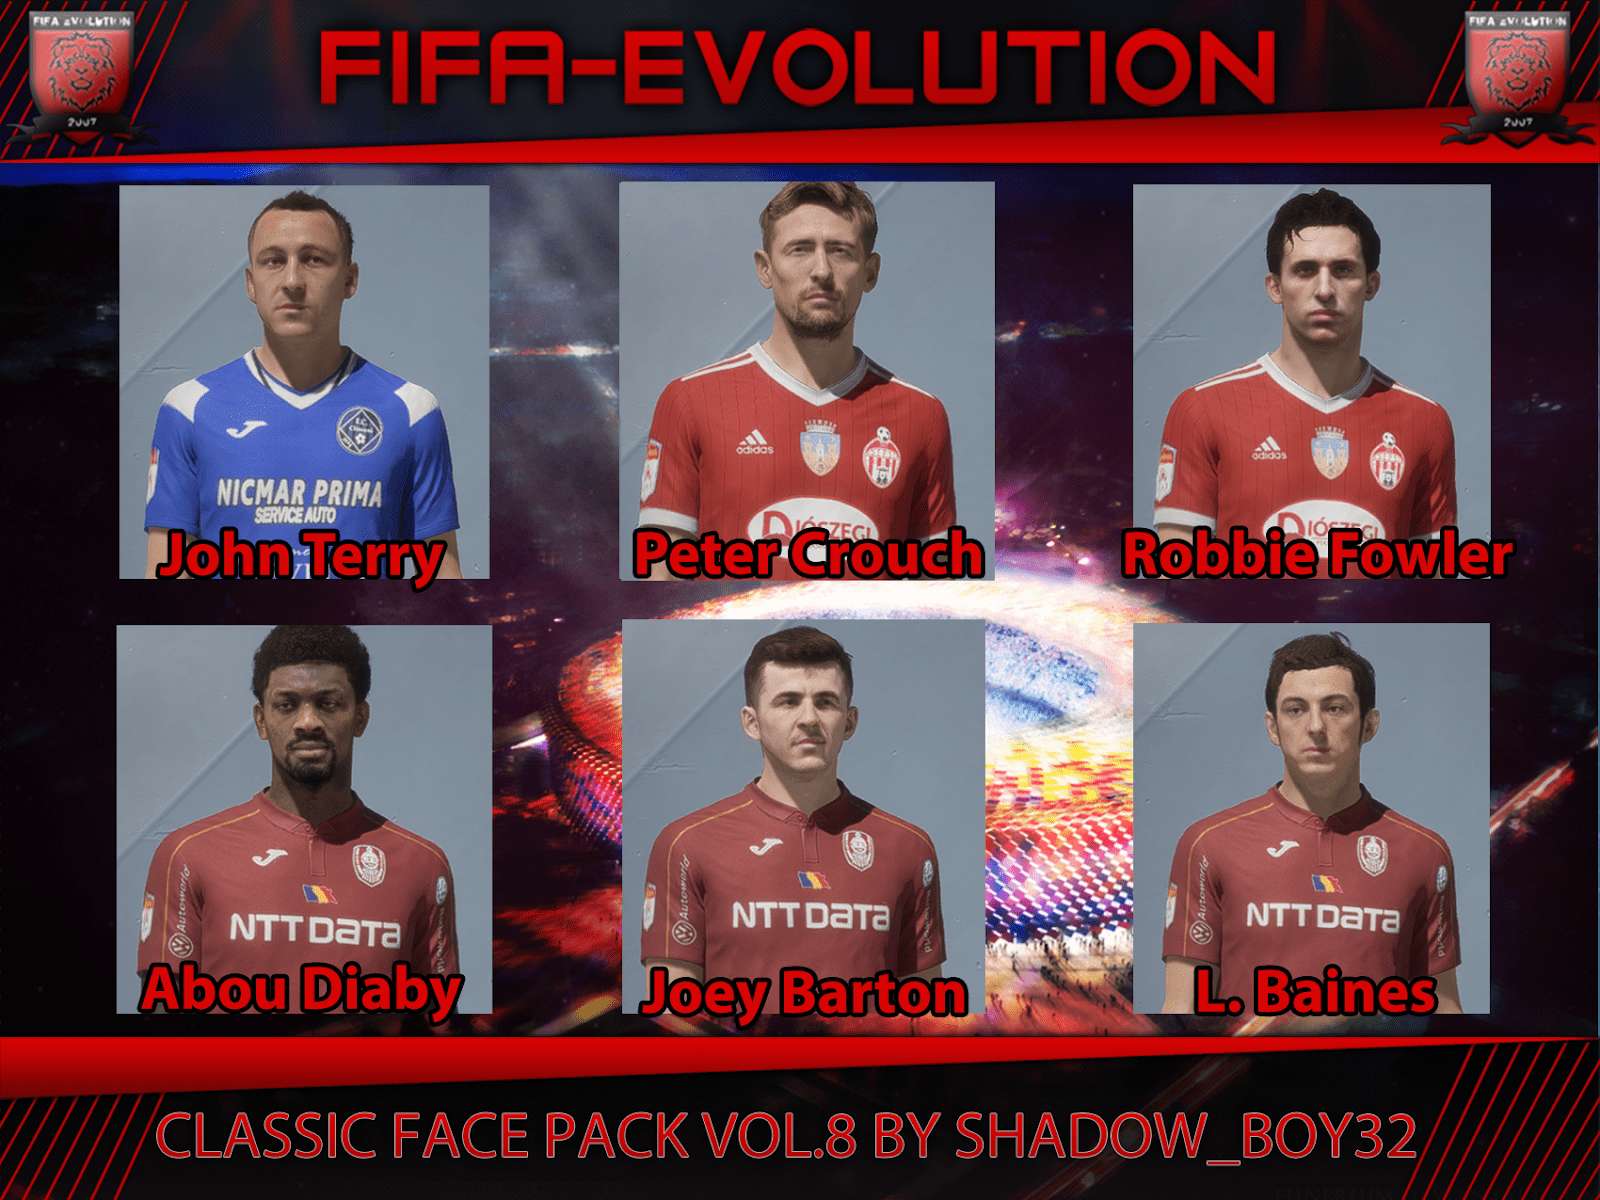 Classic converted face pack vol. 8